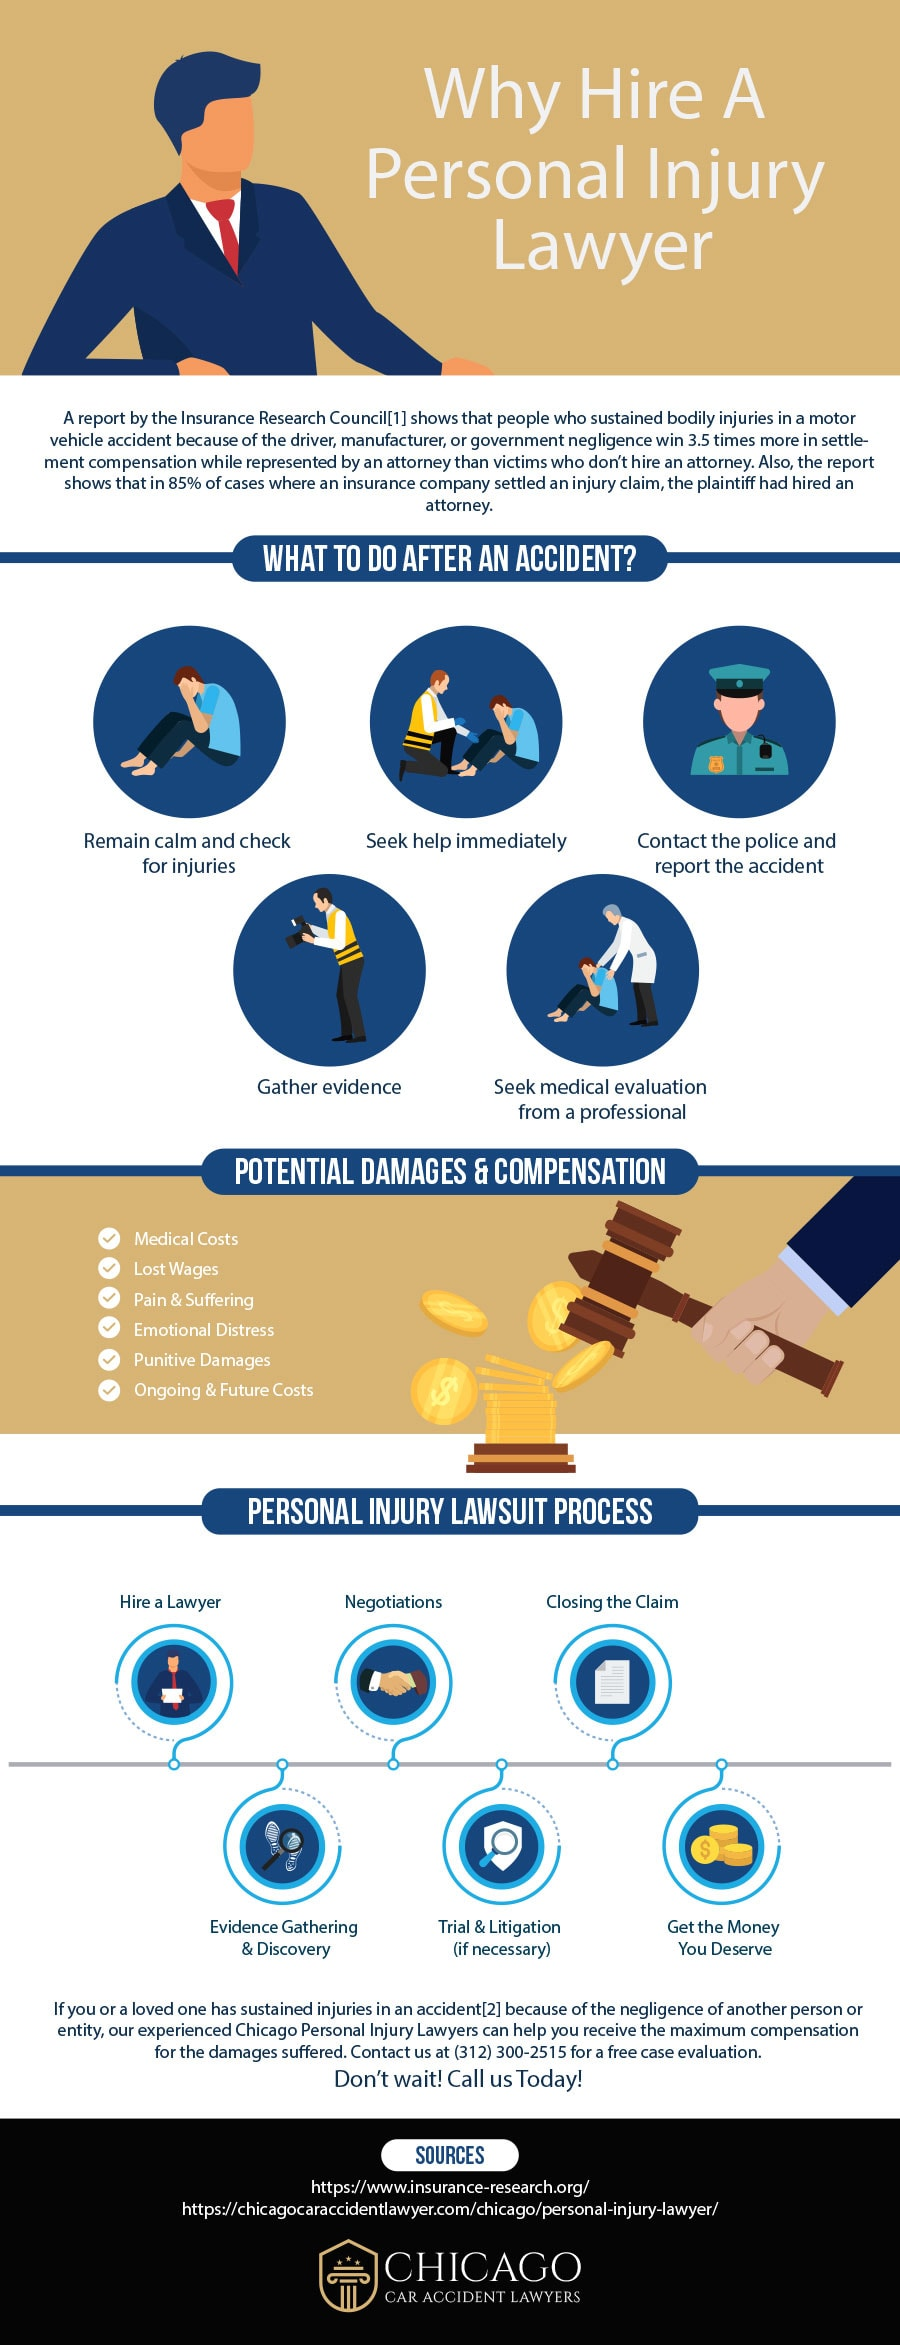 Why hire a personal injury lawyer in Chicago, IL